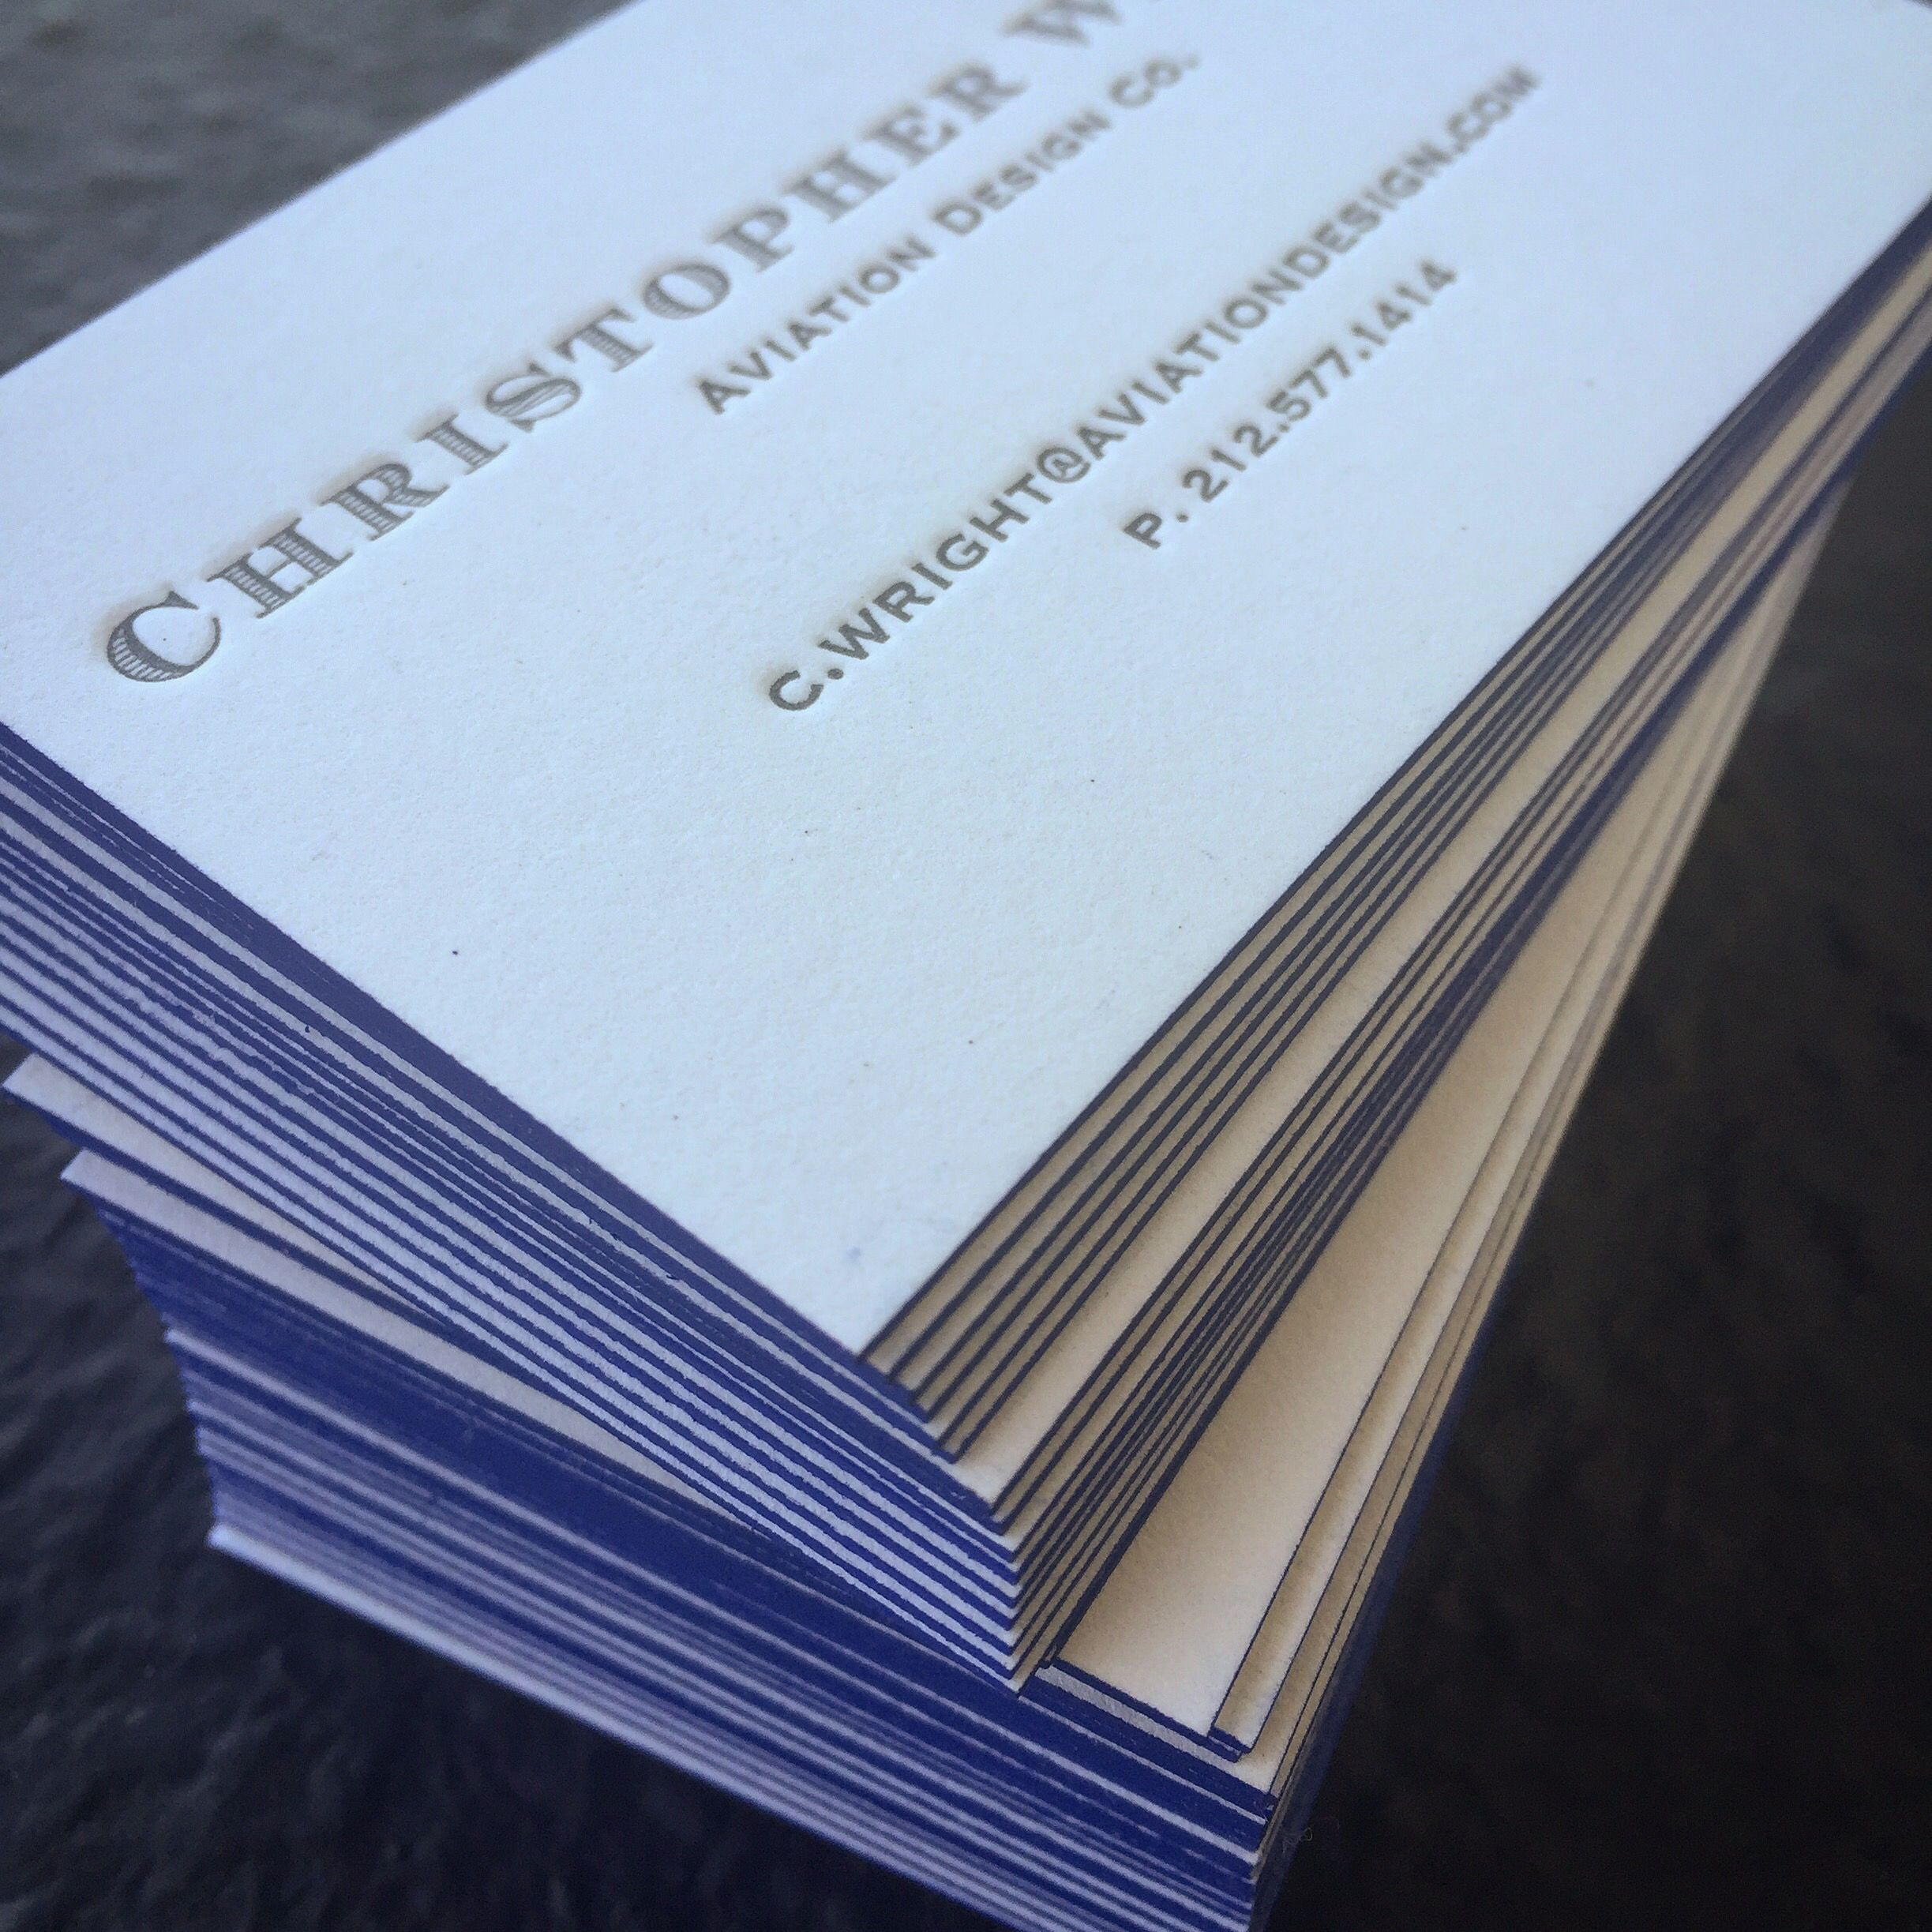 Letterpress Business Cards Online Image collections - Business Card ...